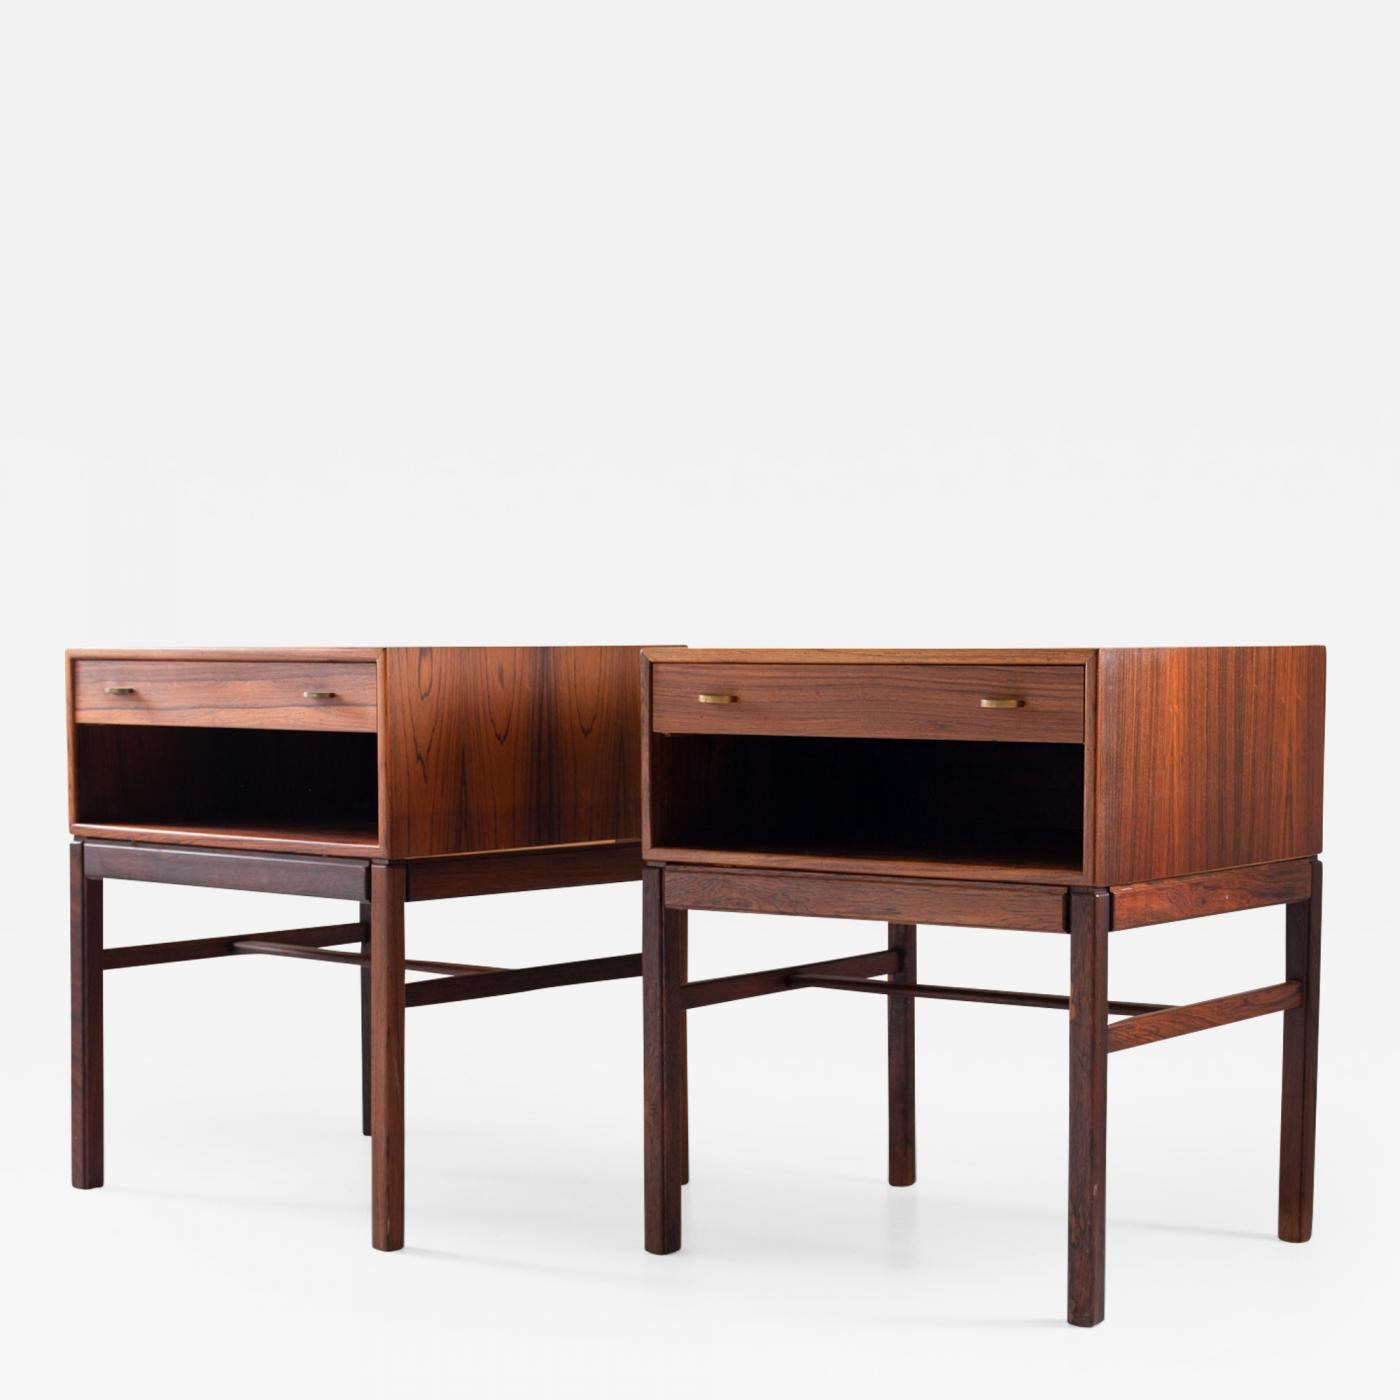 Picture of: Magnus Engstrom Scandinavian Midcentury Bedside Tables In Rosewood Model Casino 1960s